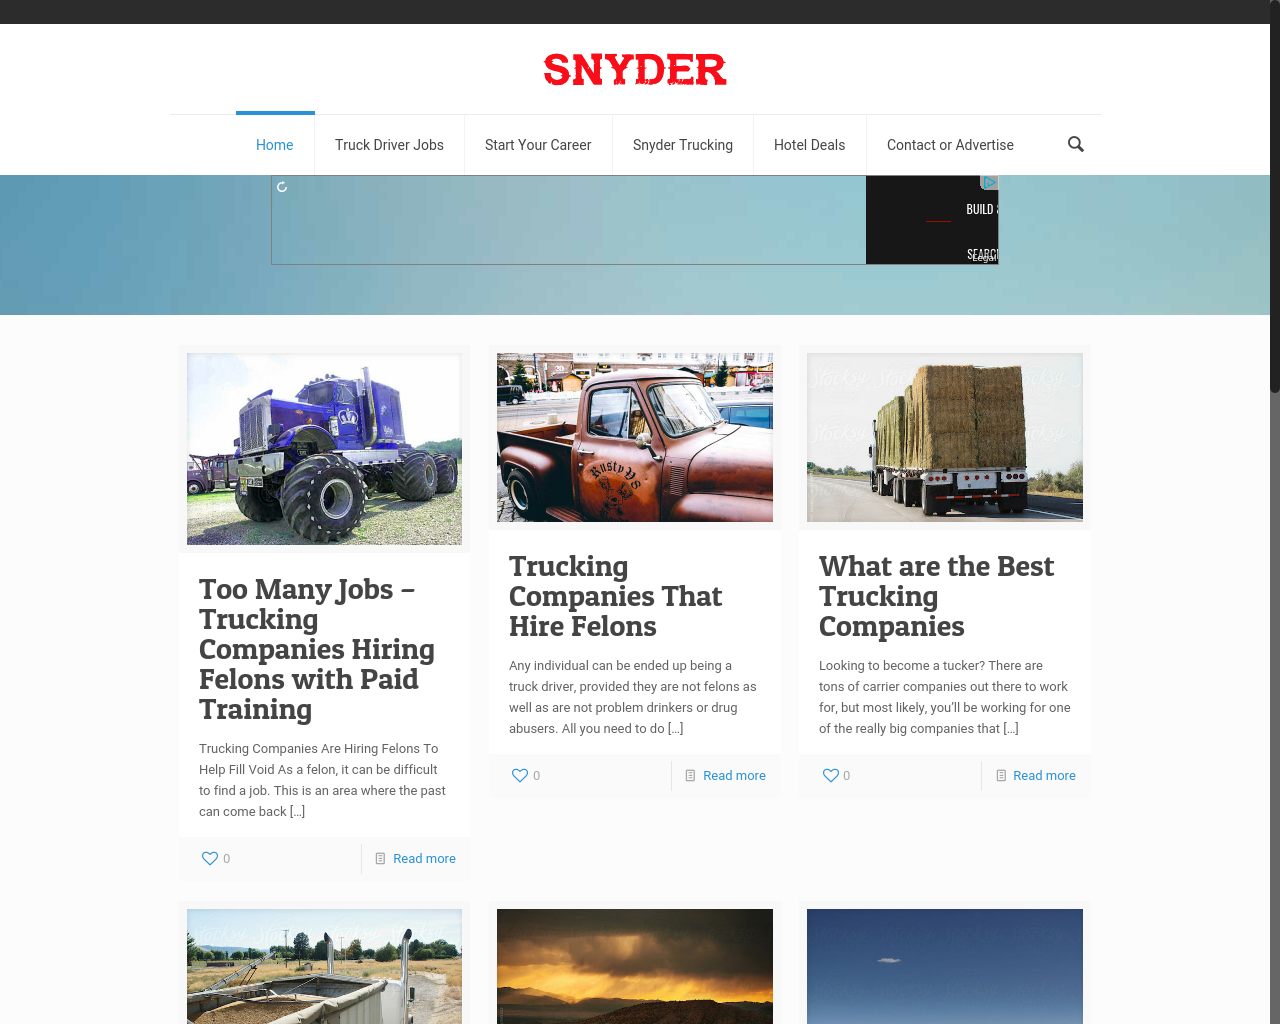 Snyder-Trucking-Advertising-Reviews-Pricing